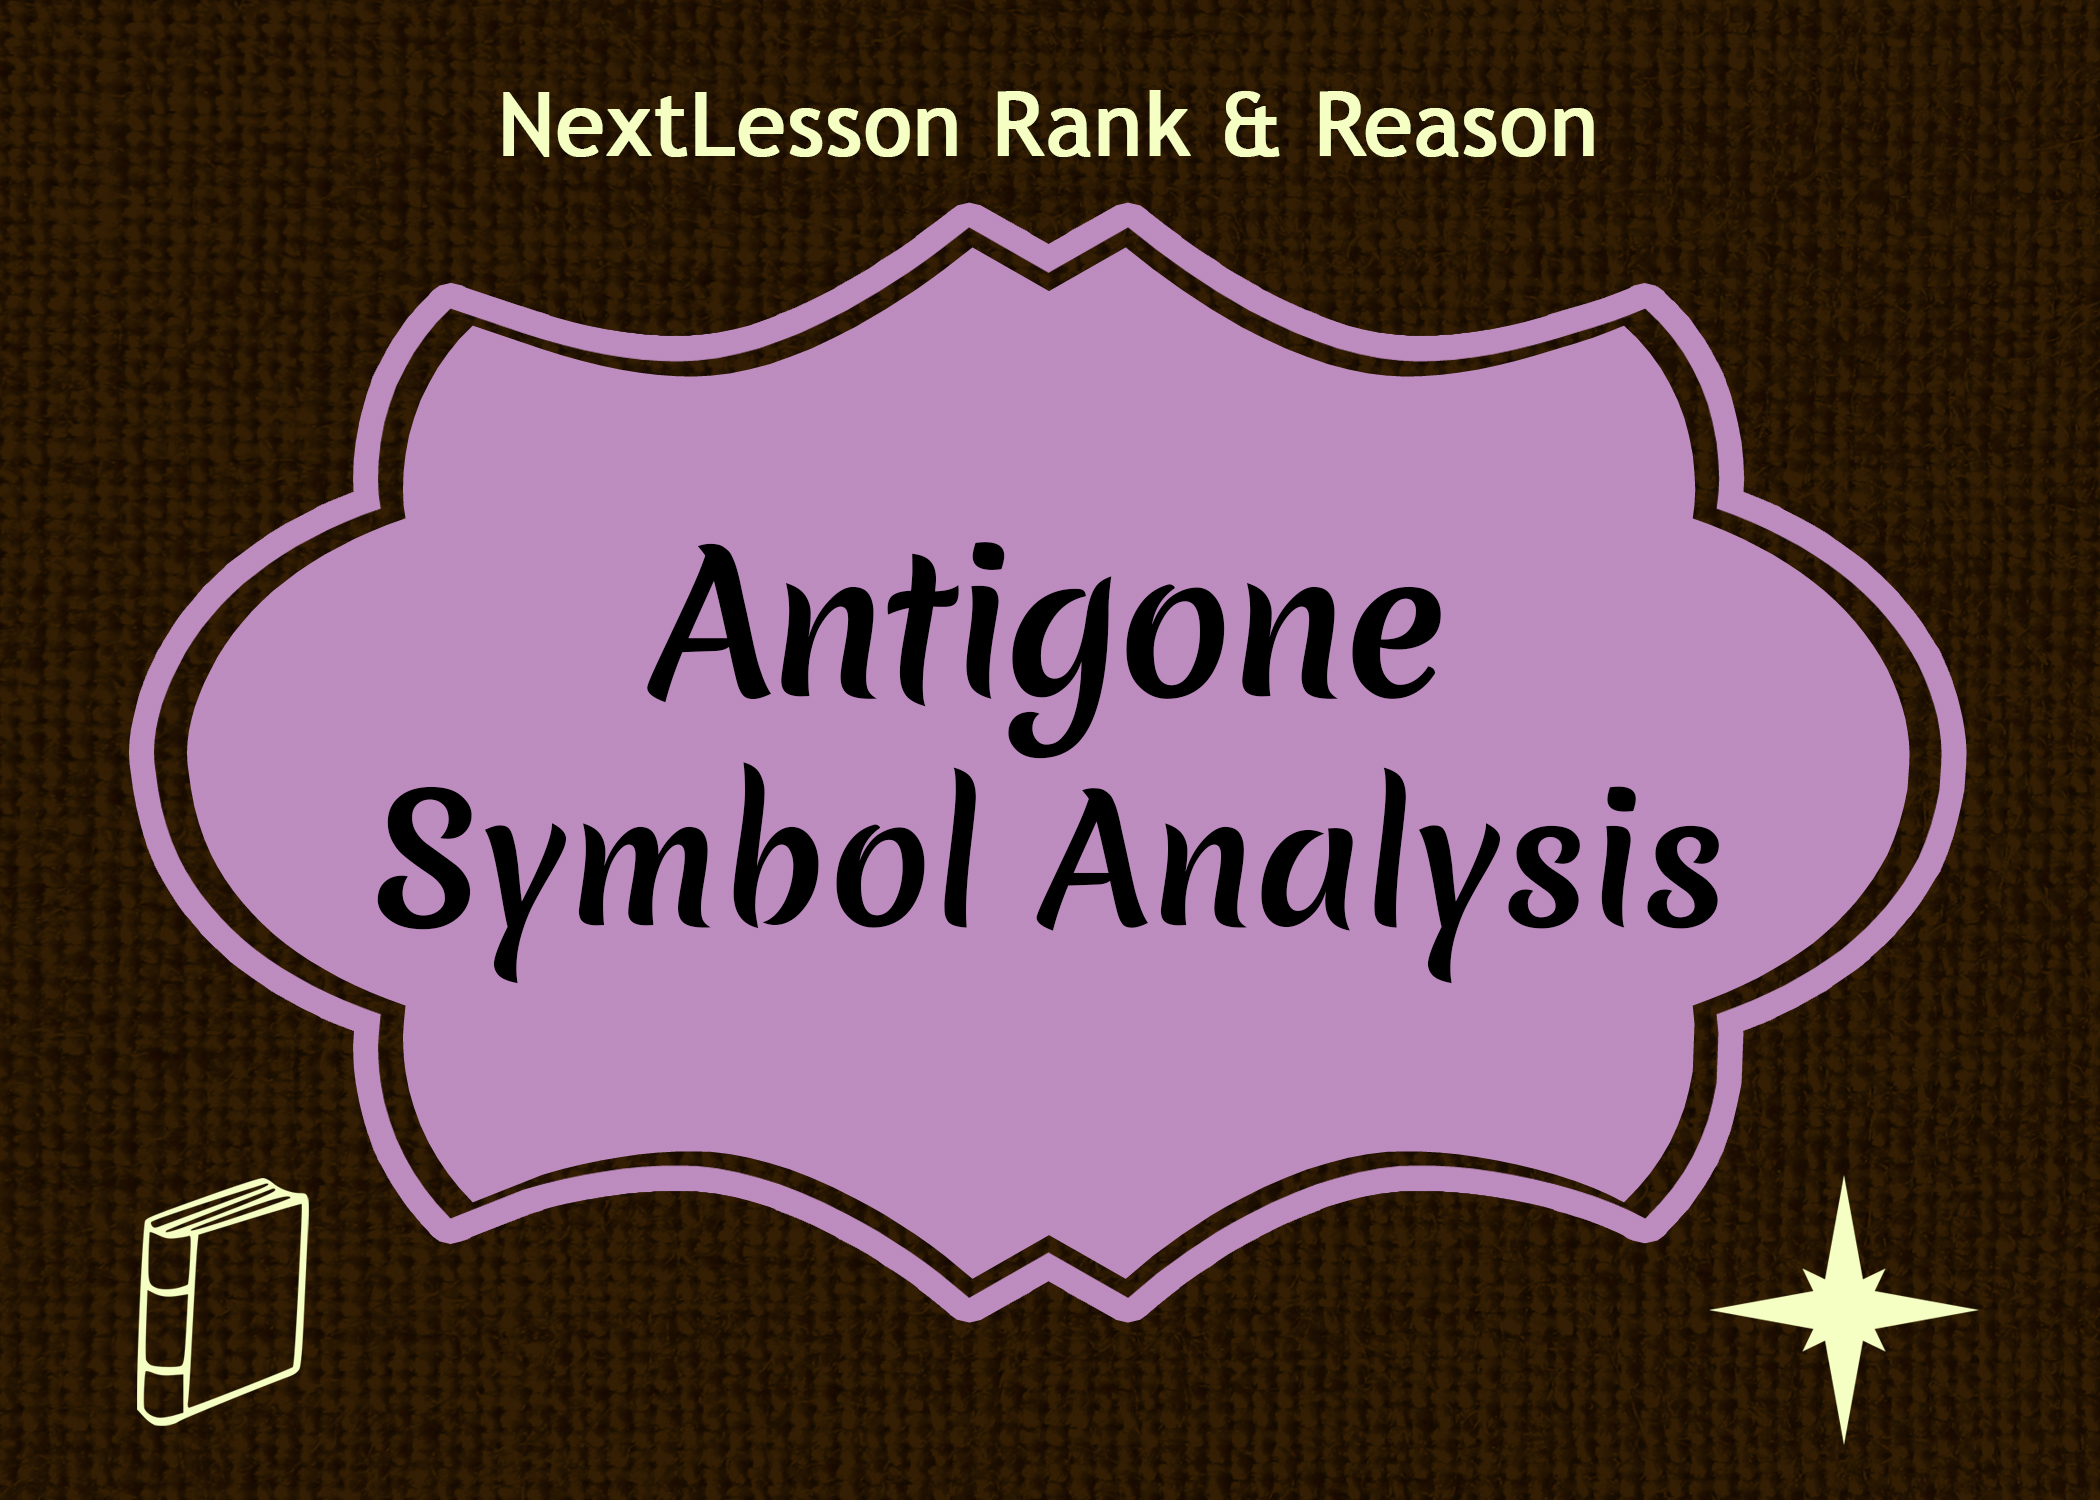 an analysis of the topic of antigone the true tragic hero by sophocles Check out our english section is used to describe the true tragic hero antigone suggested essay topics and antigone by sophocles, and analysis of your e-mail.